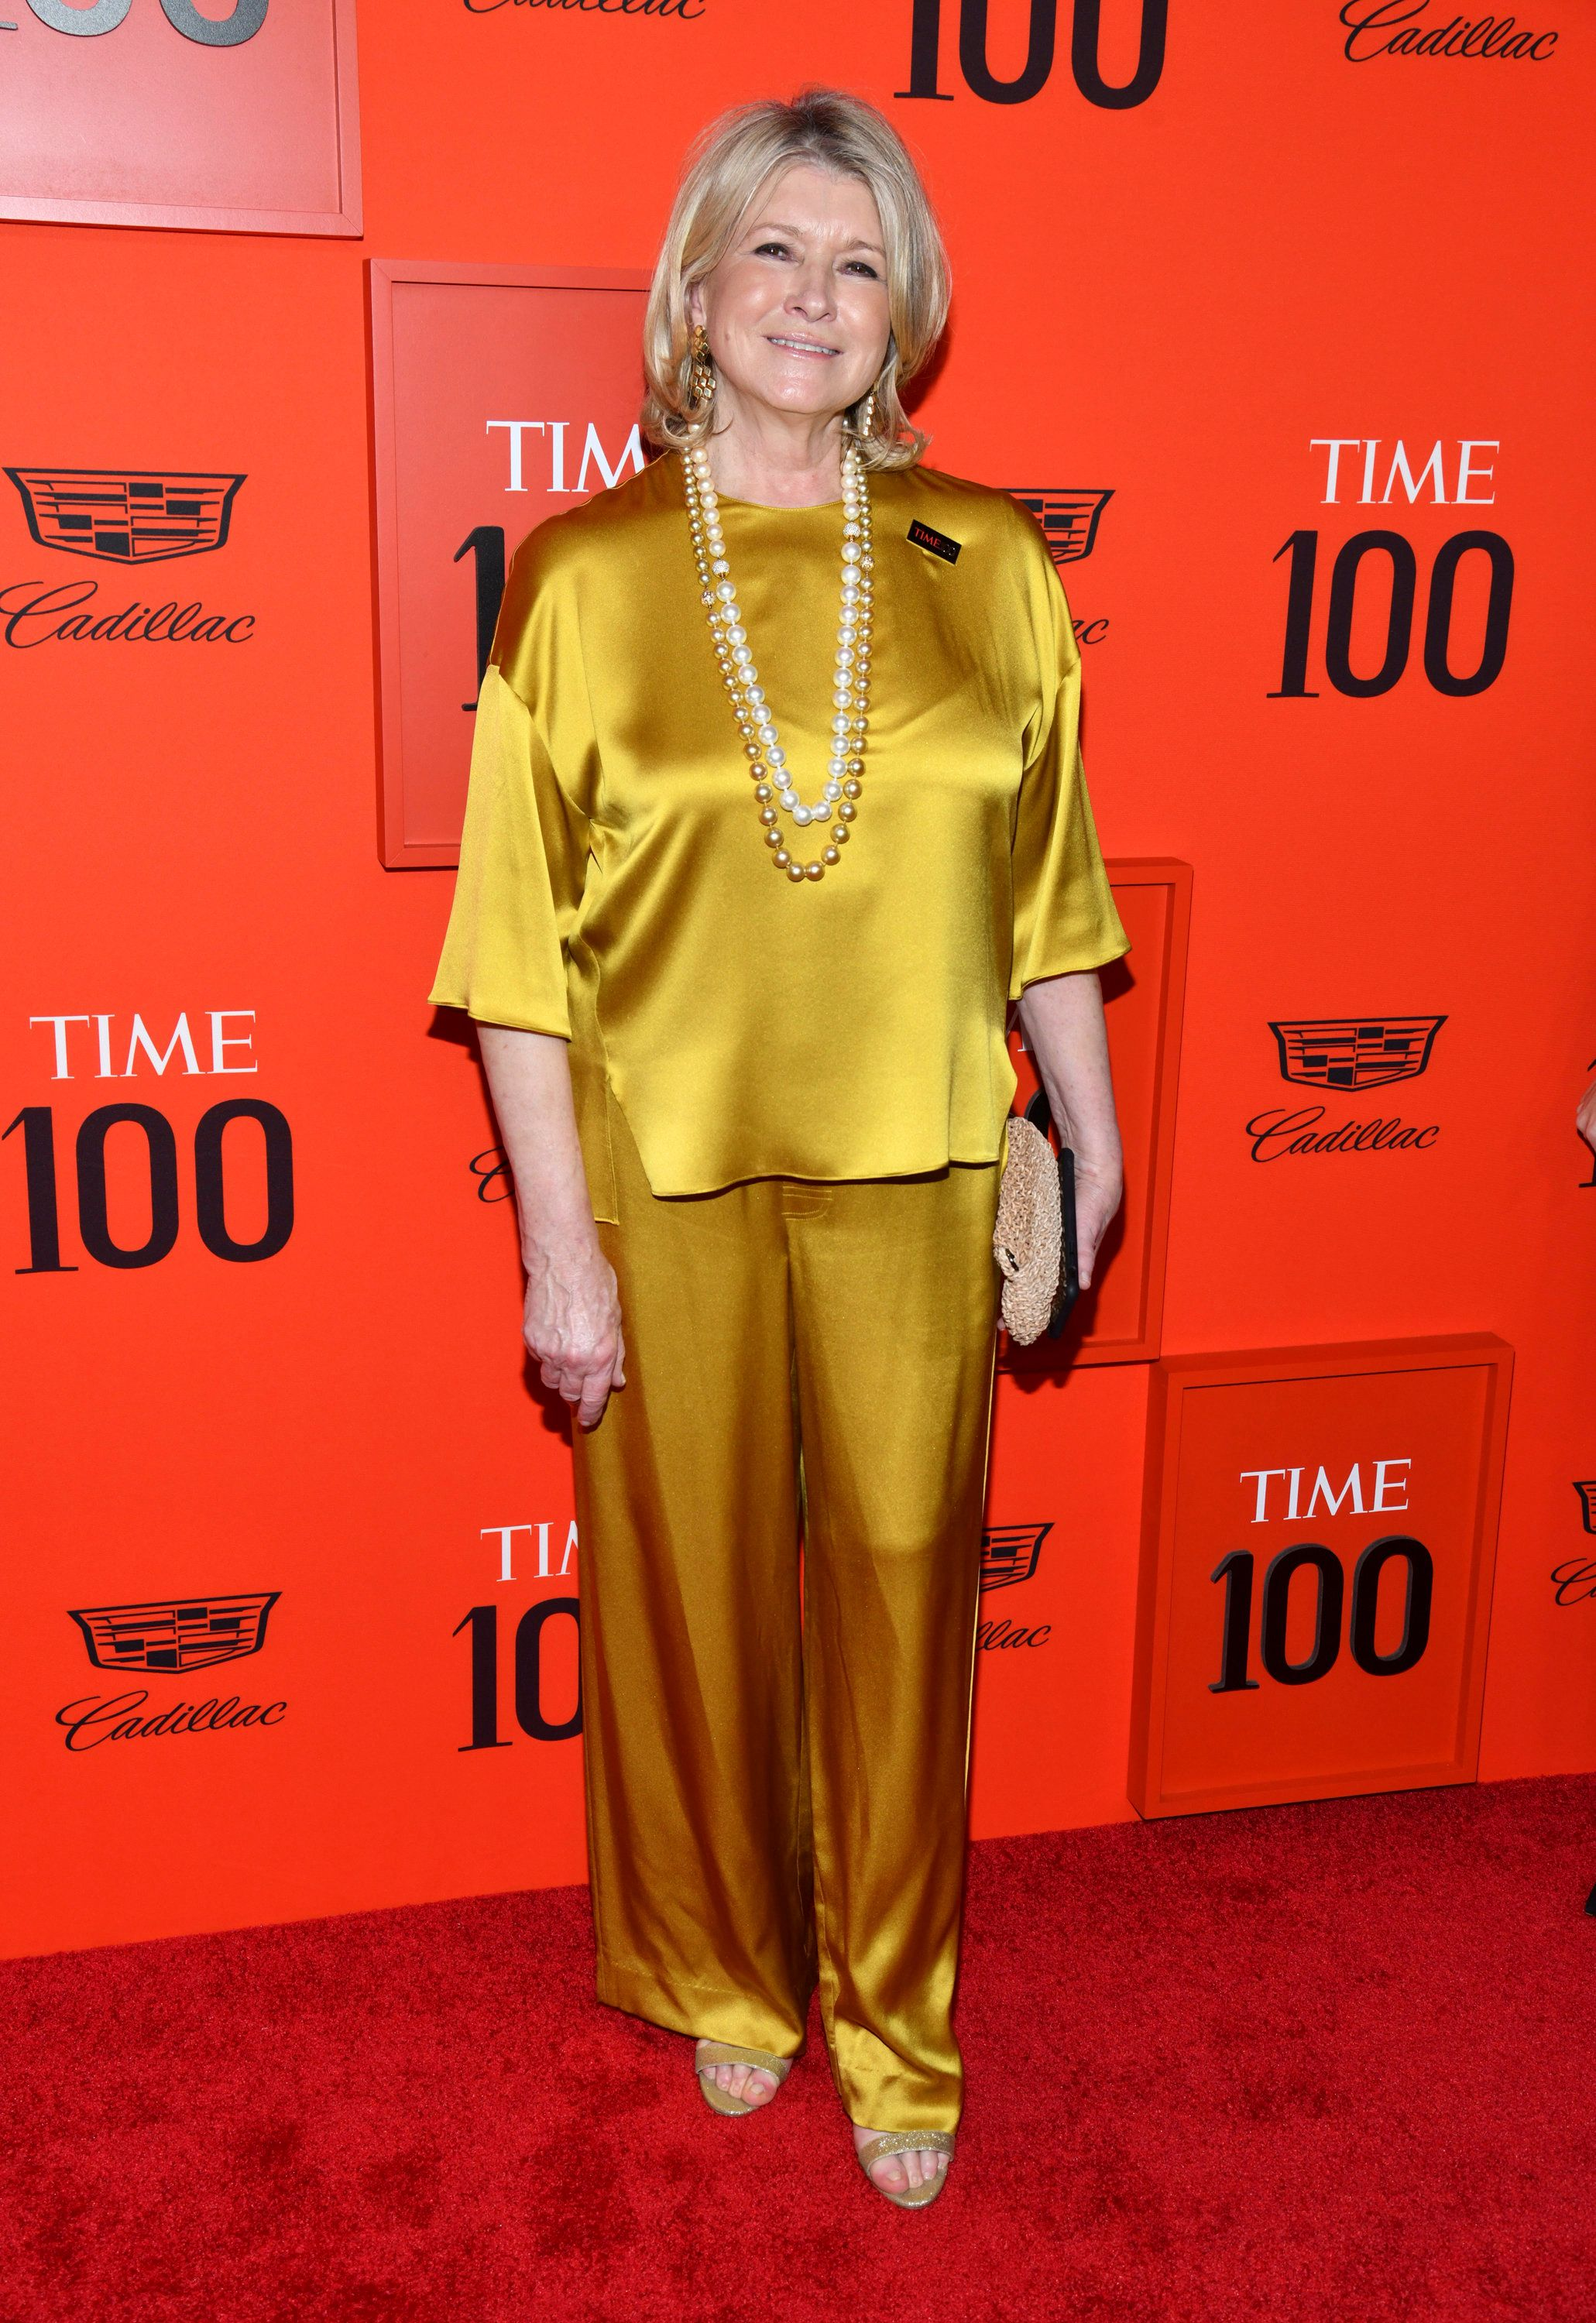 Martha Stewart attends the Time 100 Gala, celebrating the 100 most influential people in the world, at Frederick P. Rose Hall, Jazz at Lincoln Center on Tuesday, April 23, 2019, in New York. (Photo by Charles Sykes/Invision/AP)